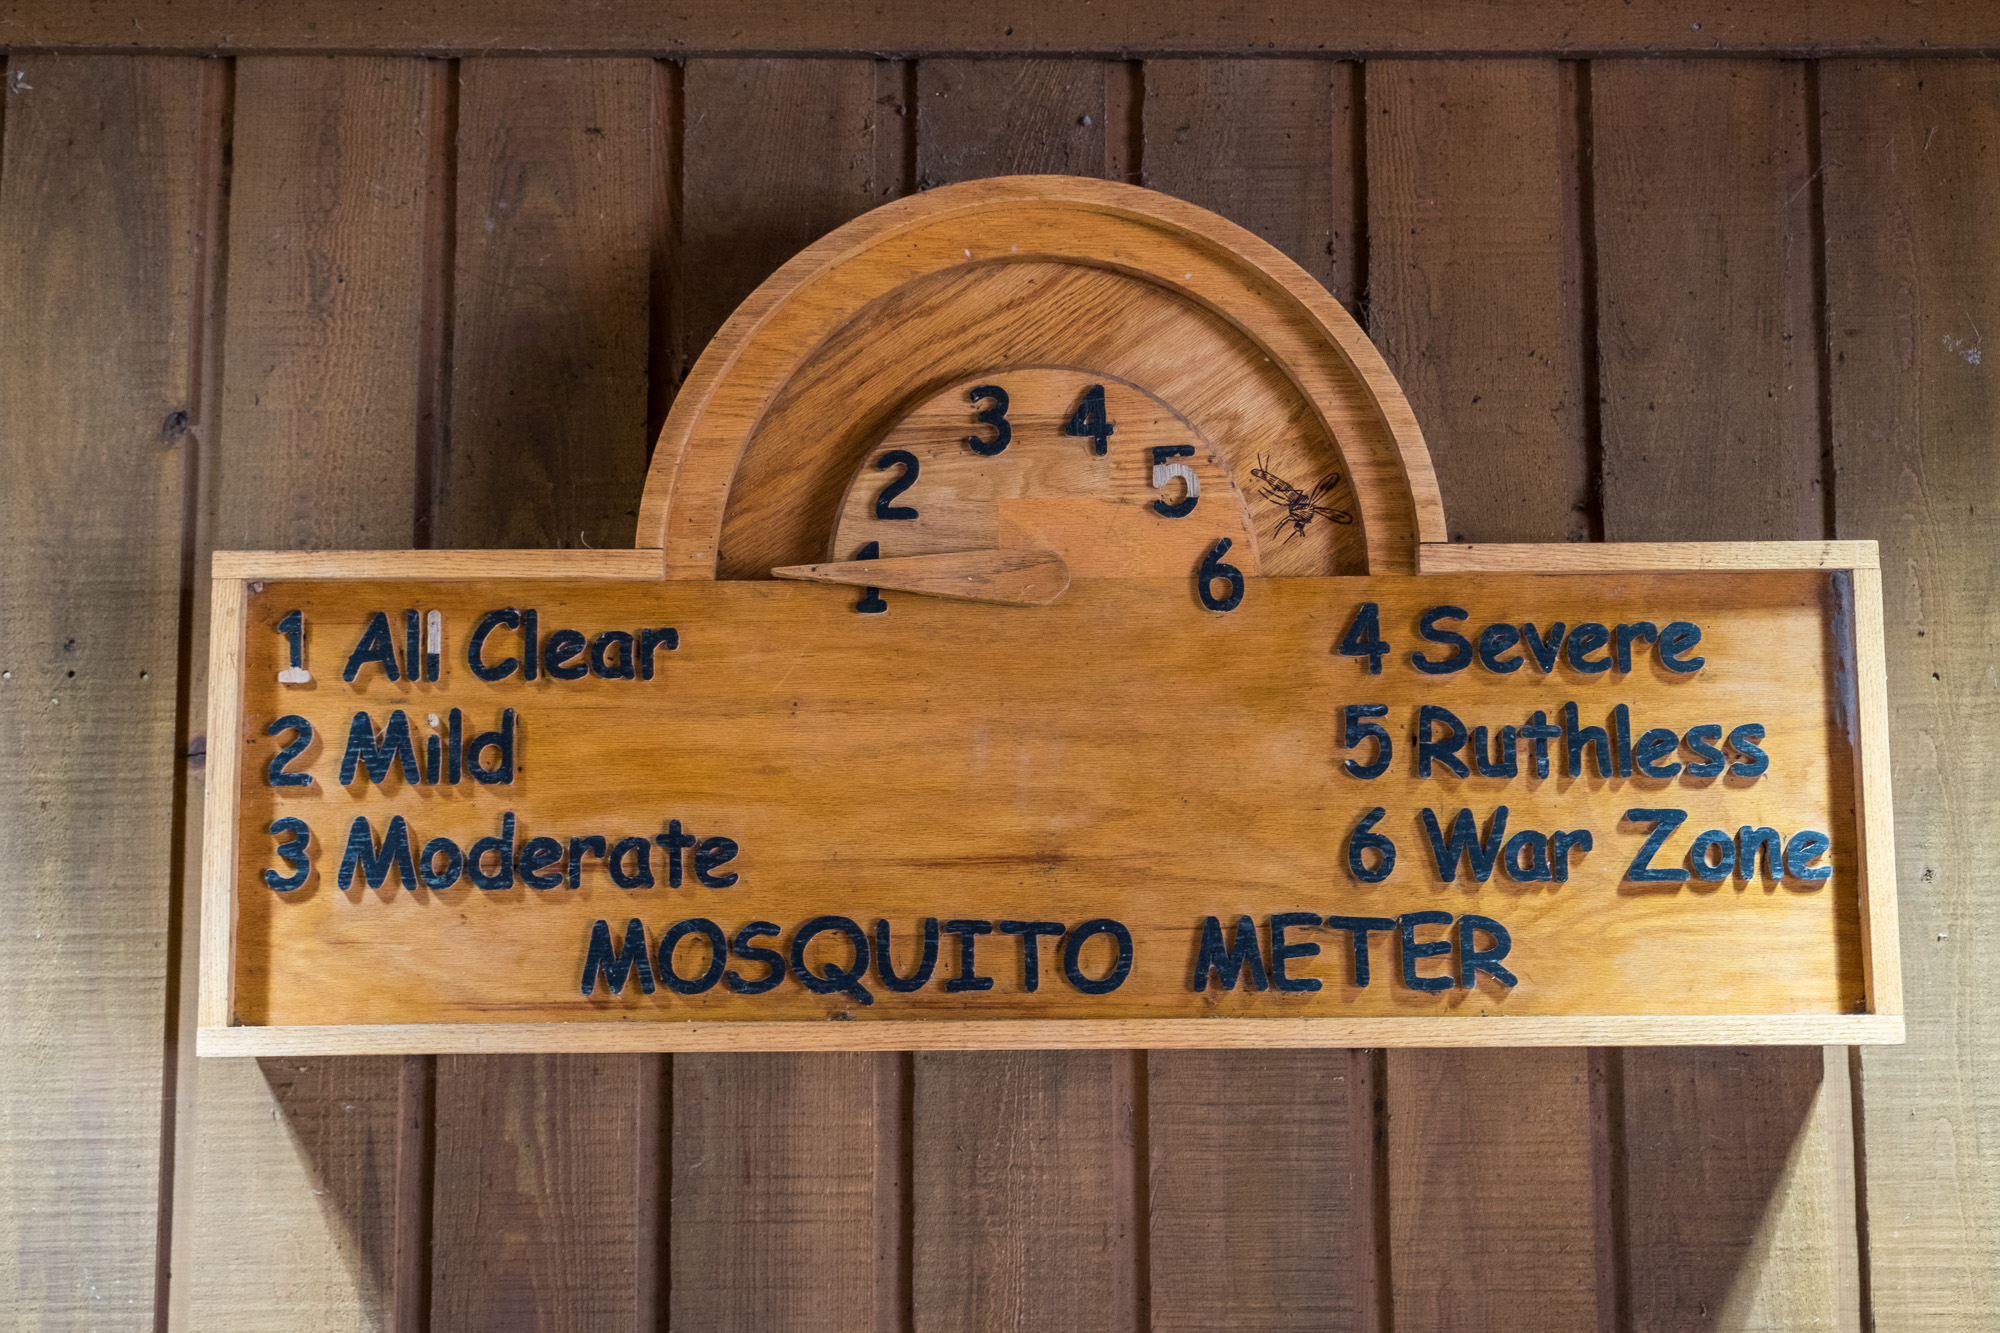 Mosquito meter at Congaree National Park Visitor Center.